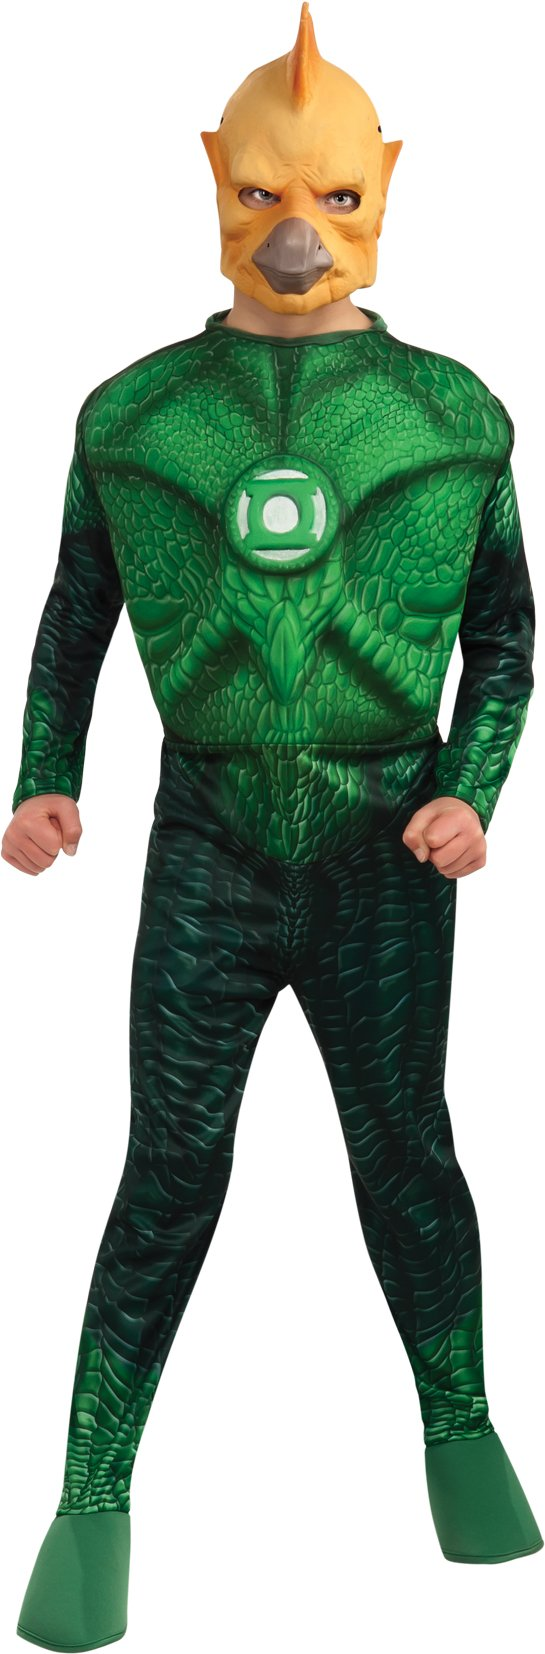 Green Lantern - Tomar-Re Muscle Child Costume